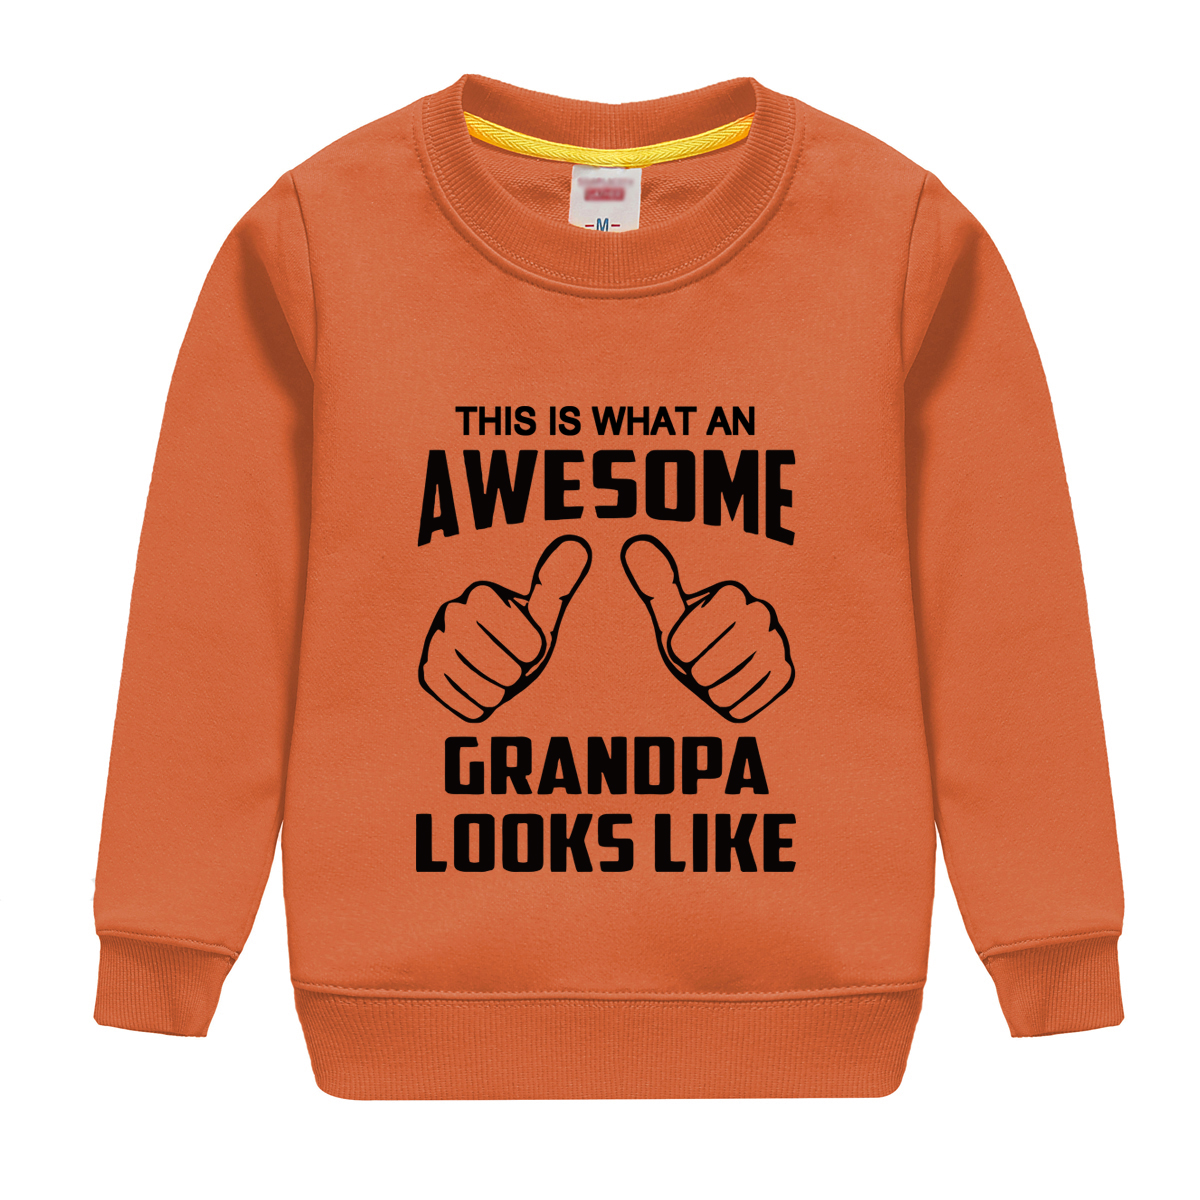 "HTB1l3jijyqAXuNjy1Xdq6yYcVXaY - ""this is what an awesome granopa  looks like "" printing 2018 new fashion cotton sweatshirt baby boy clothing top tees for kids"